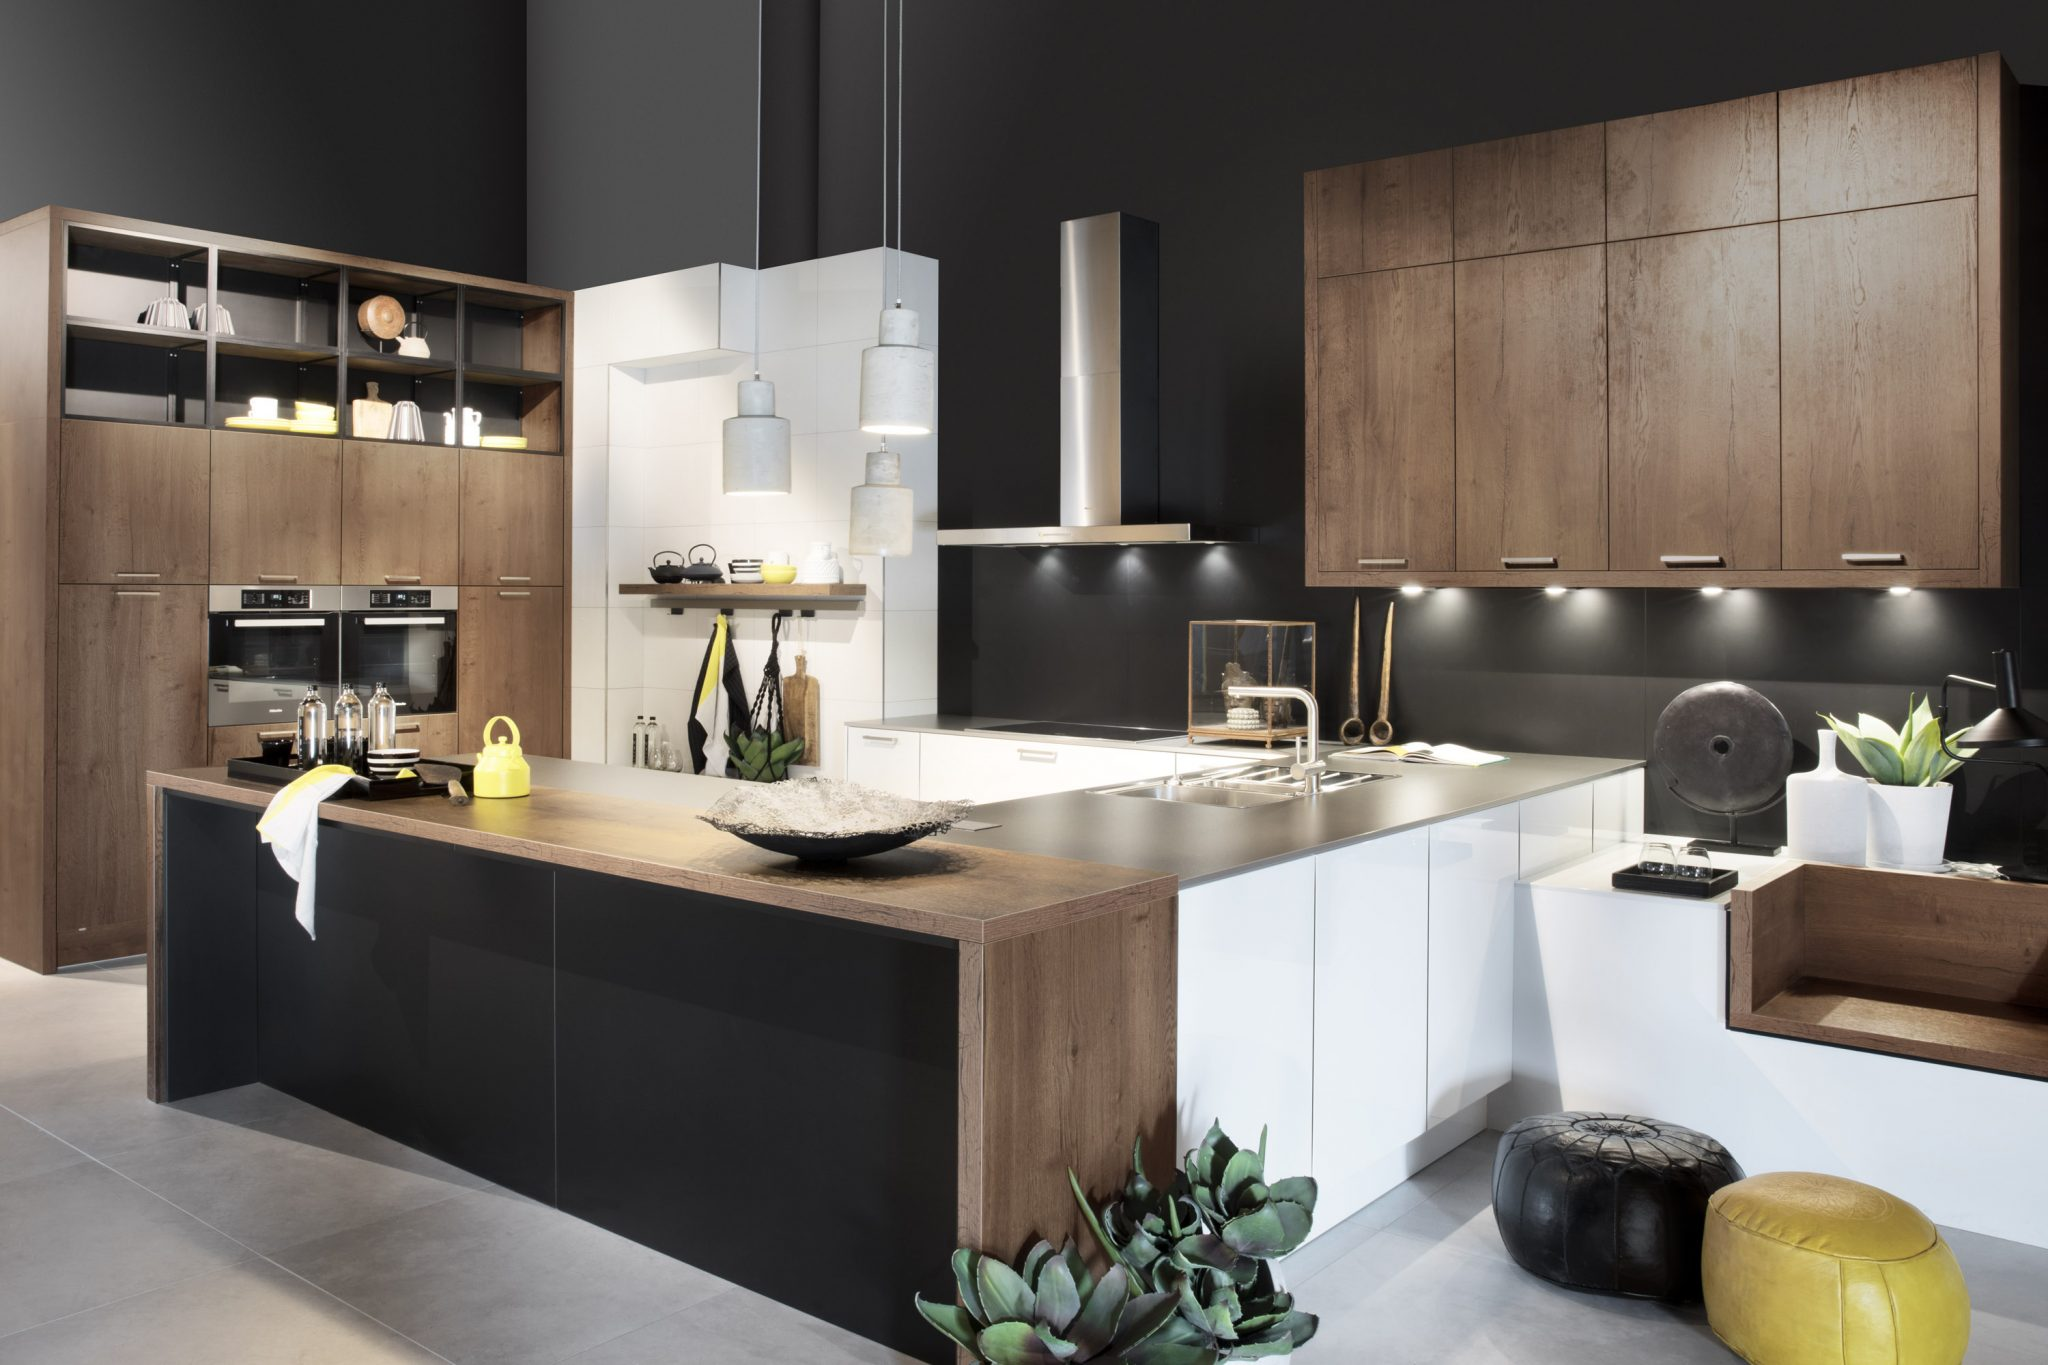 ralph winter | kitchens | bedrooms | living | based in exeter